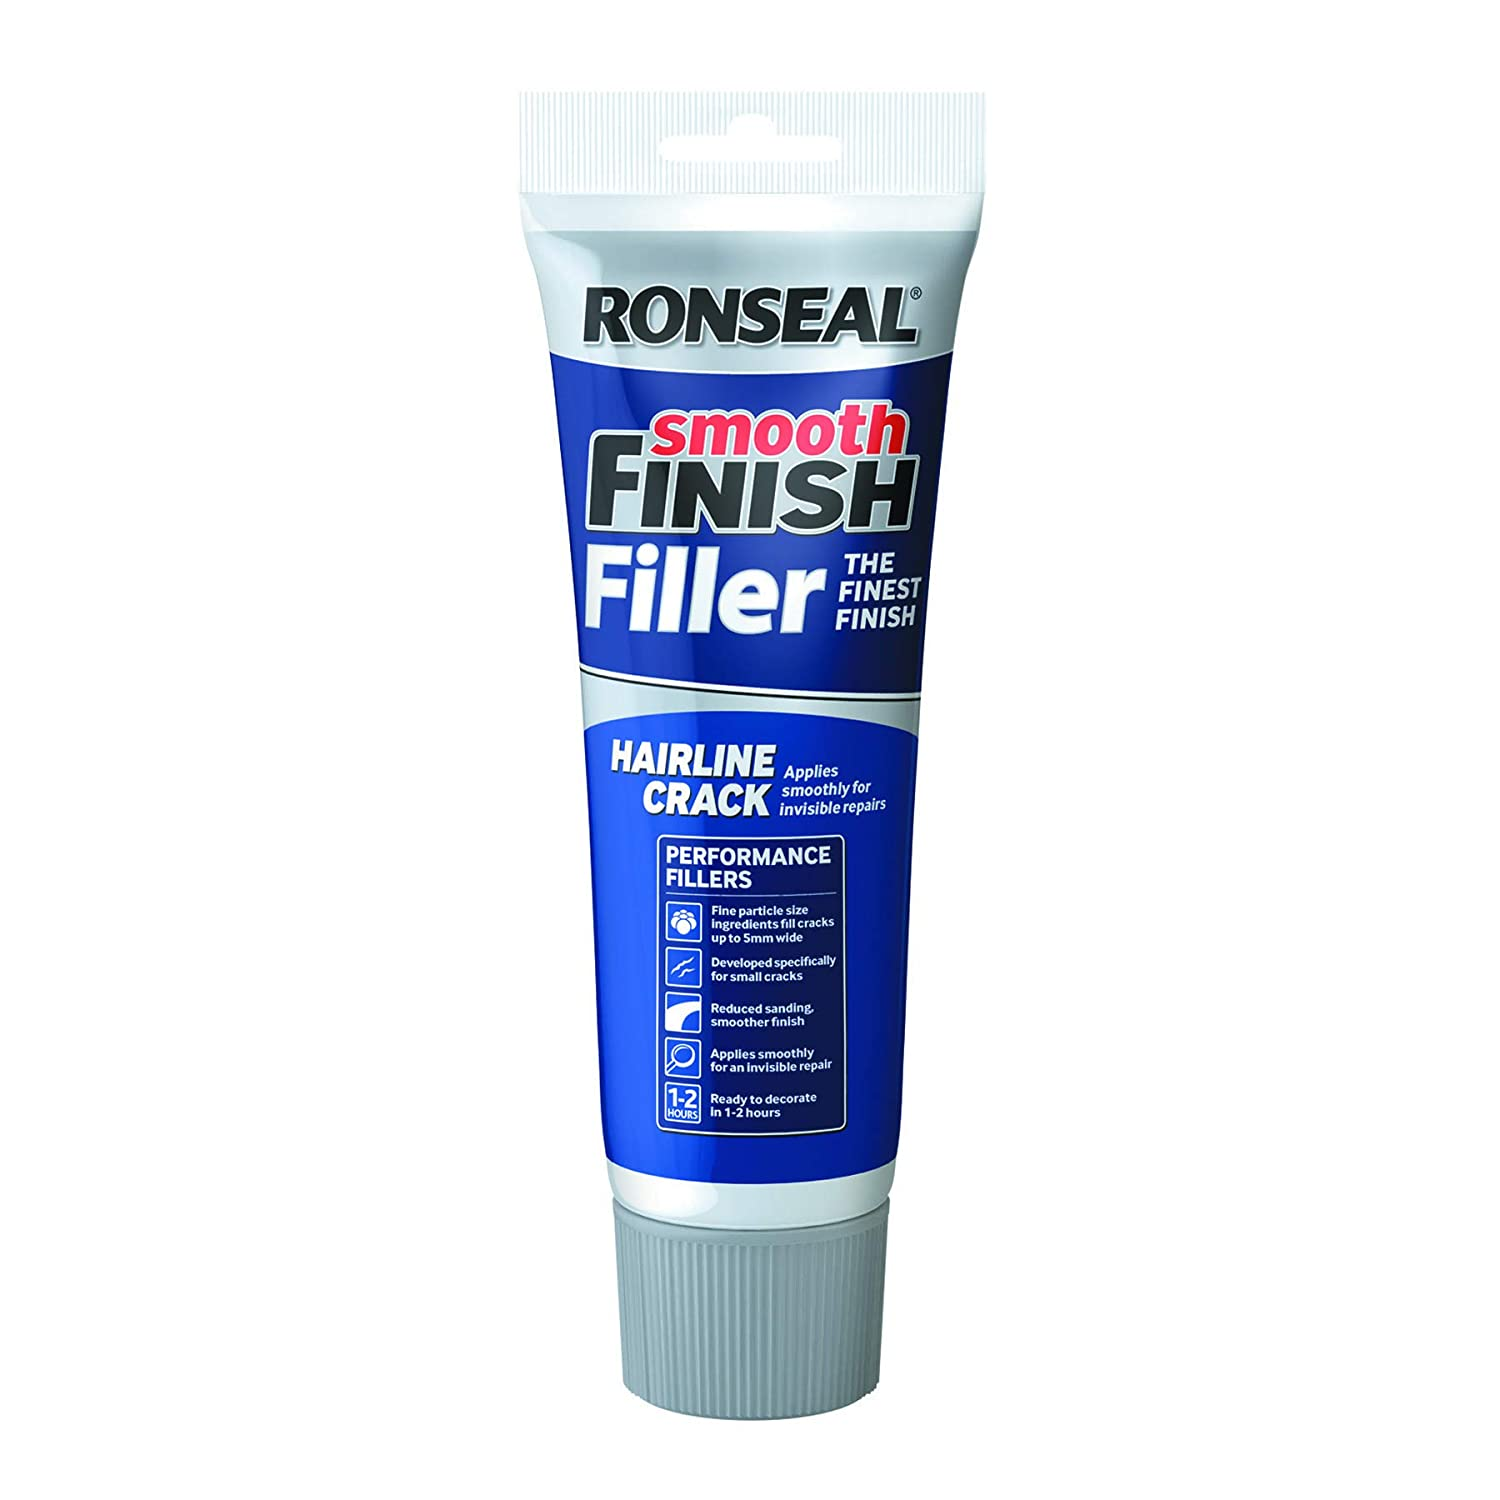 Ronseal Smooth Finish Hairline Crack Filler 330g 6886397-HHW